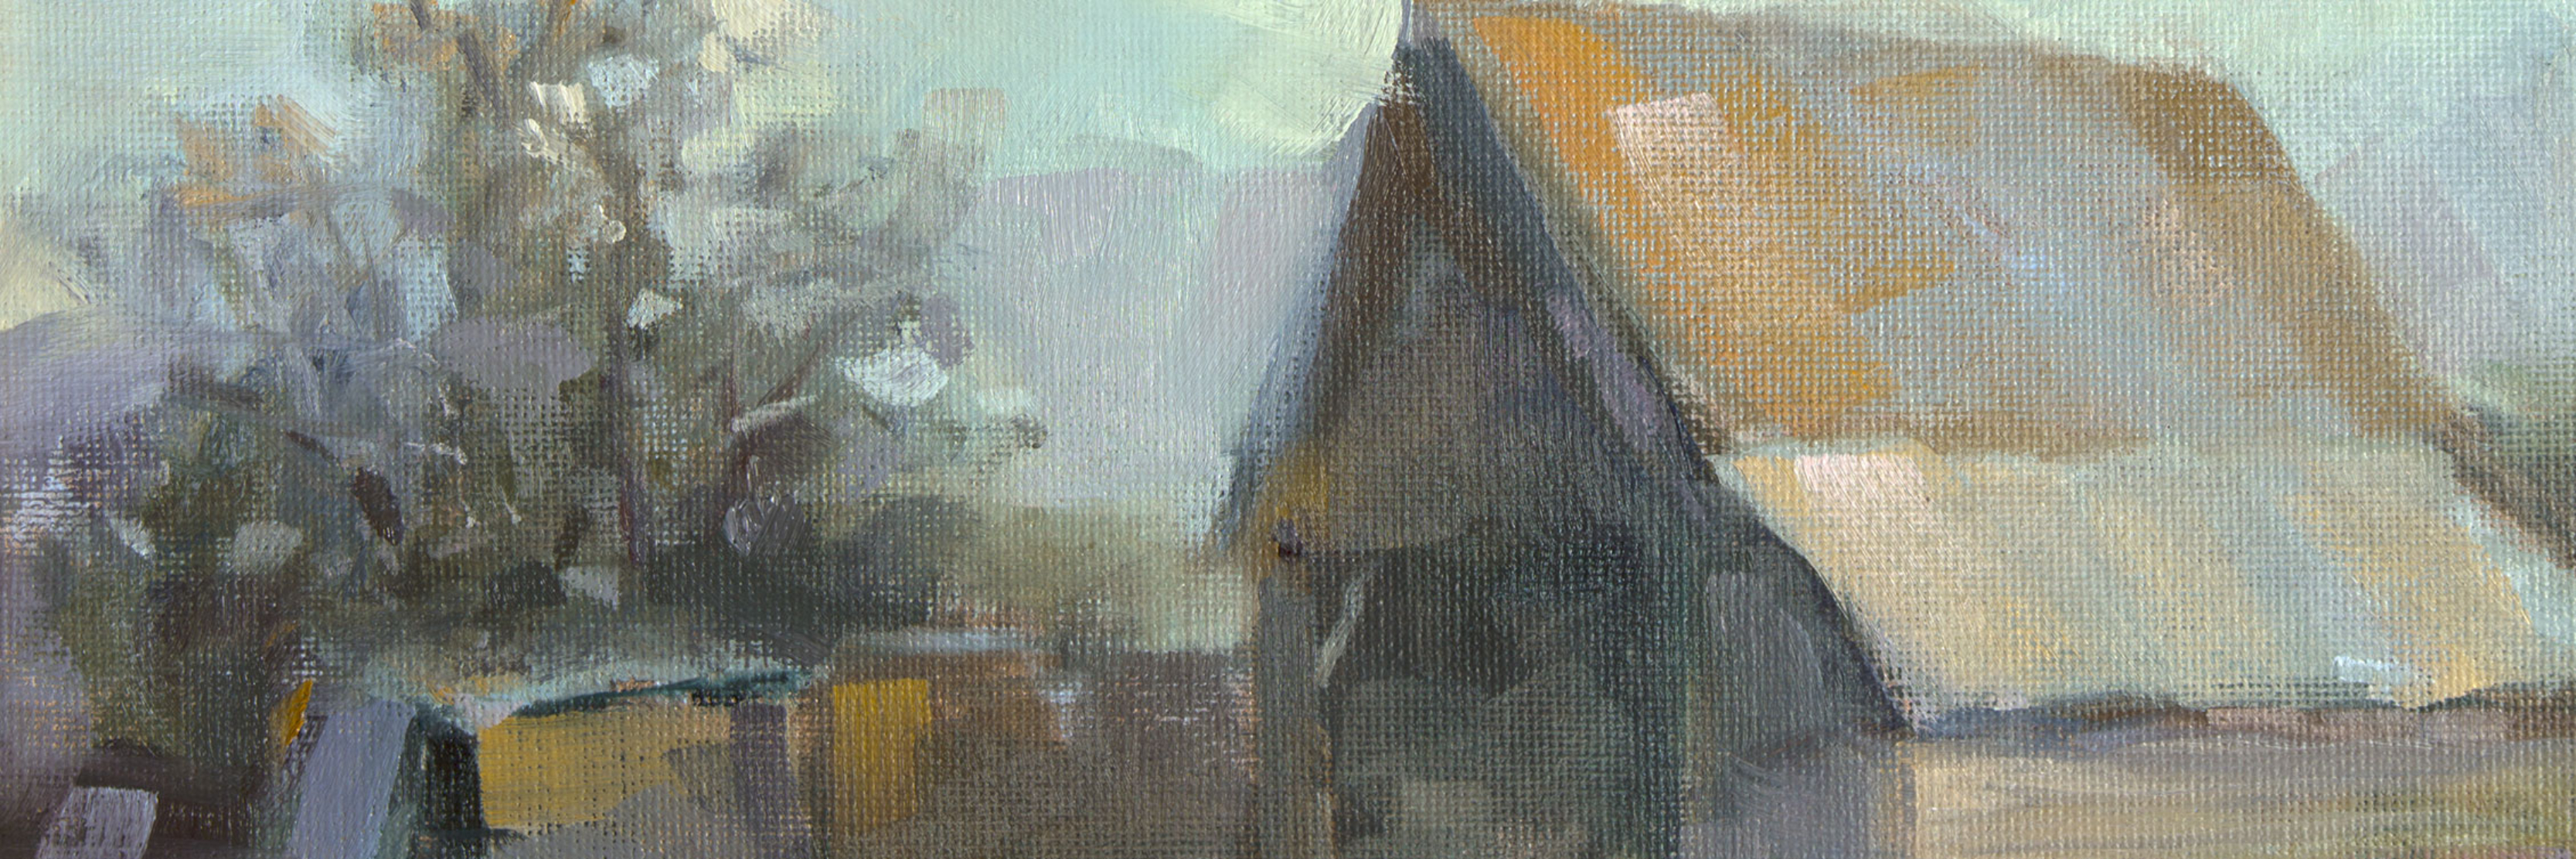 plein-air-painting-landcape-utah